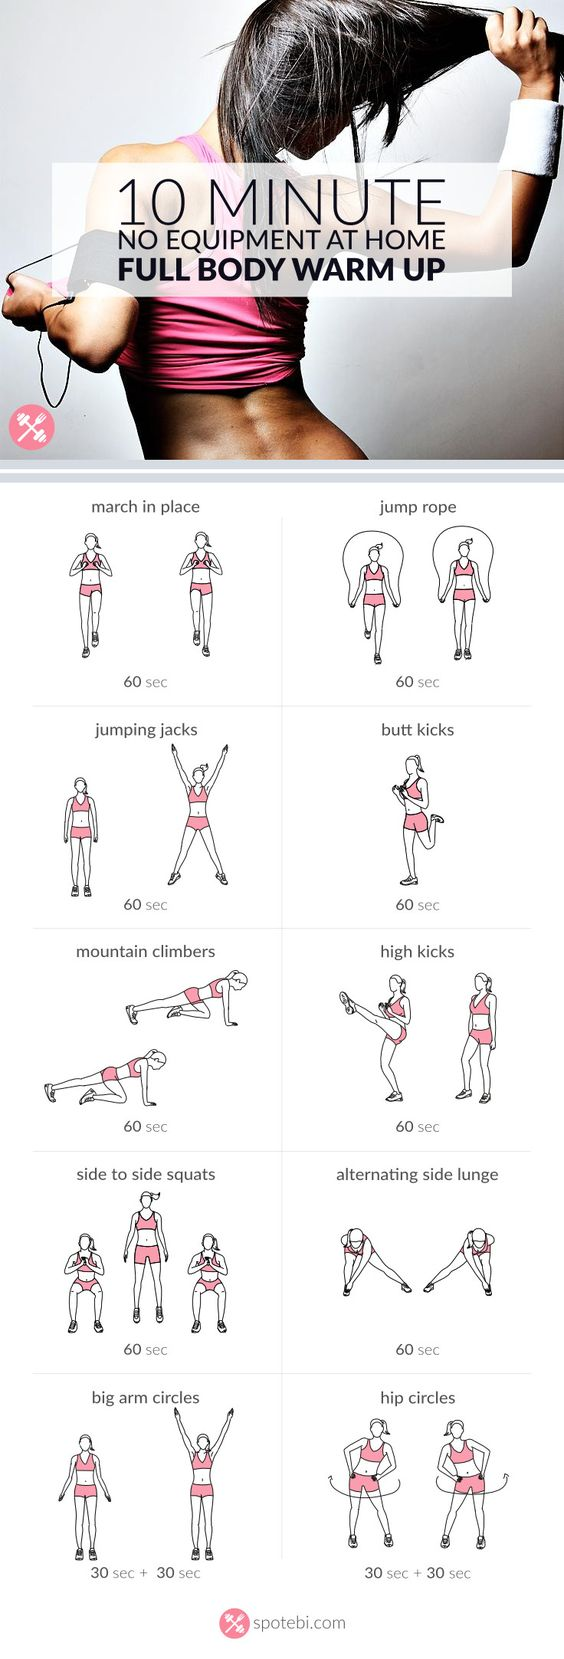 Fat Burning Home Exercises Images